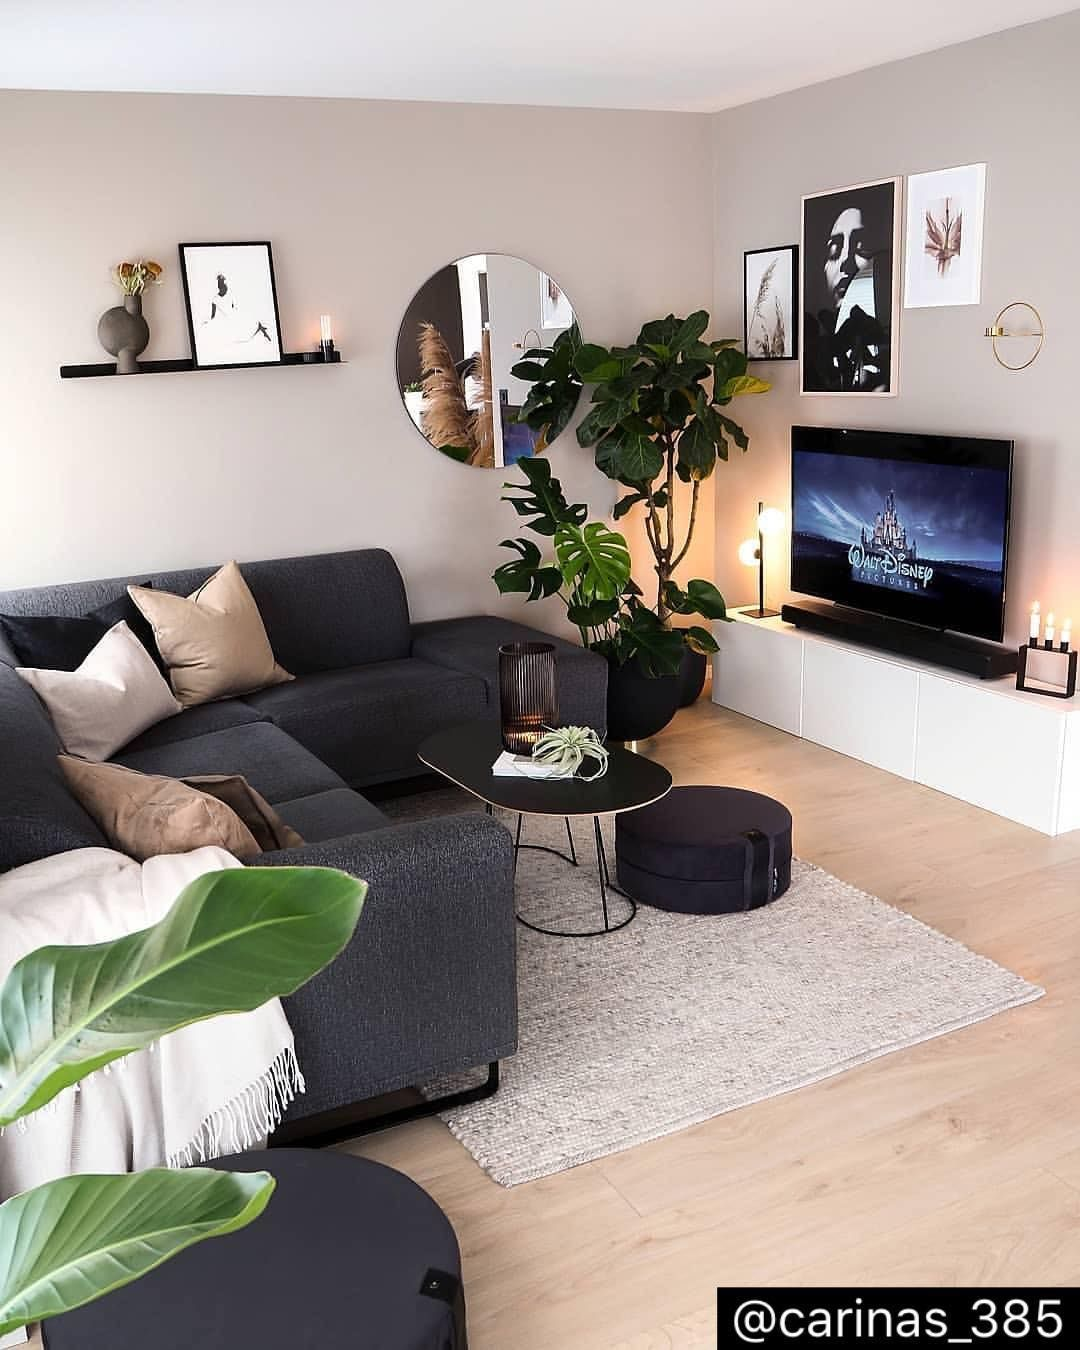 5 tips to follow to successfully decorate your living room #interiordesign #interior #home #deco #architecture #seasonal decorating business Account Temporary On Hold